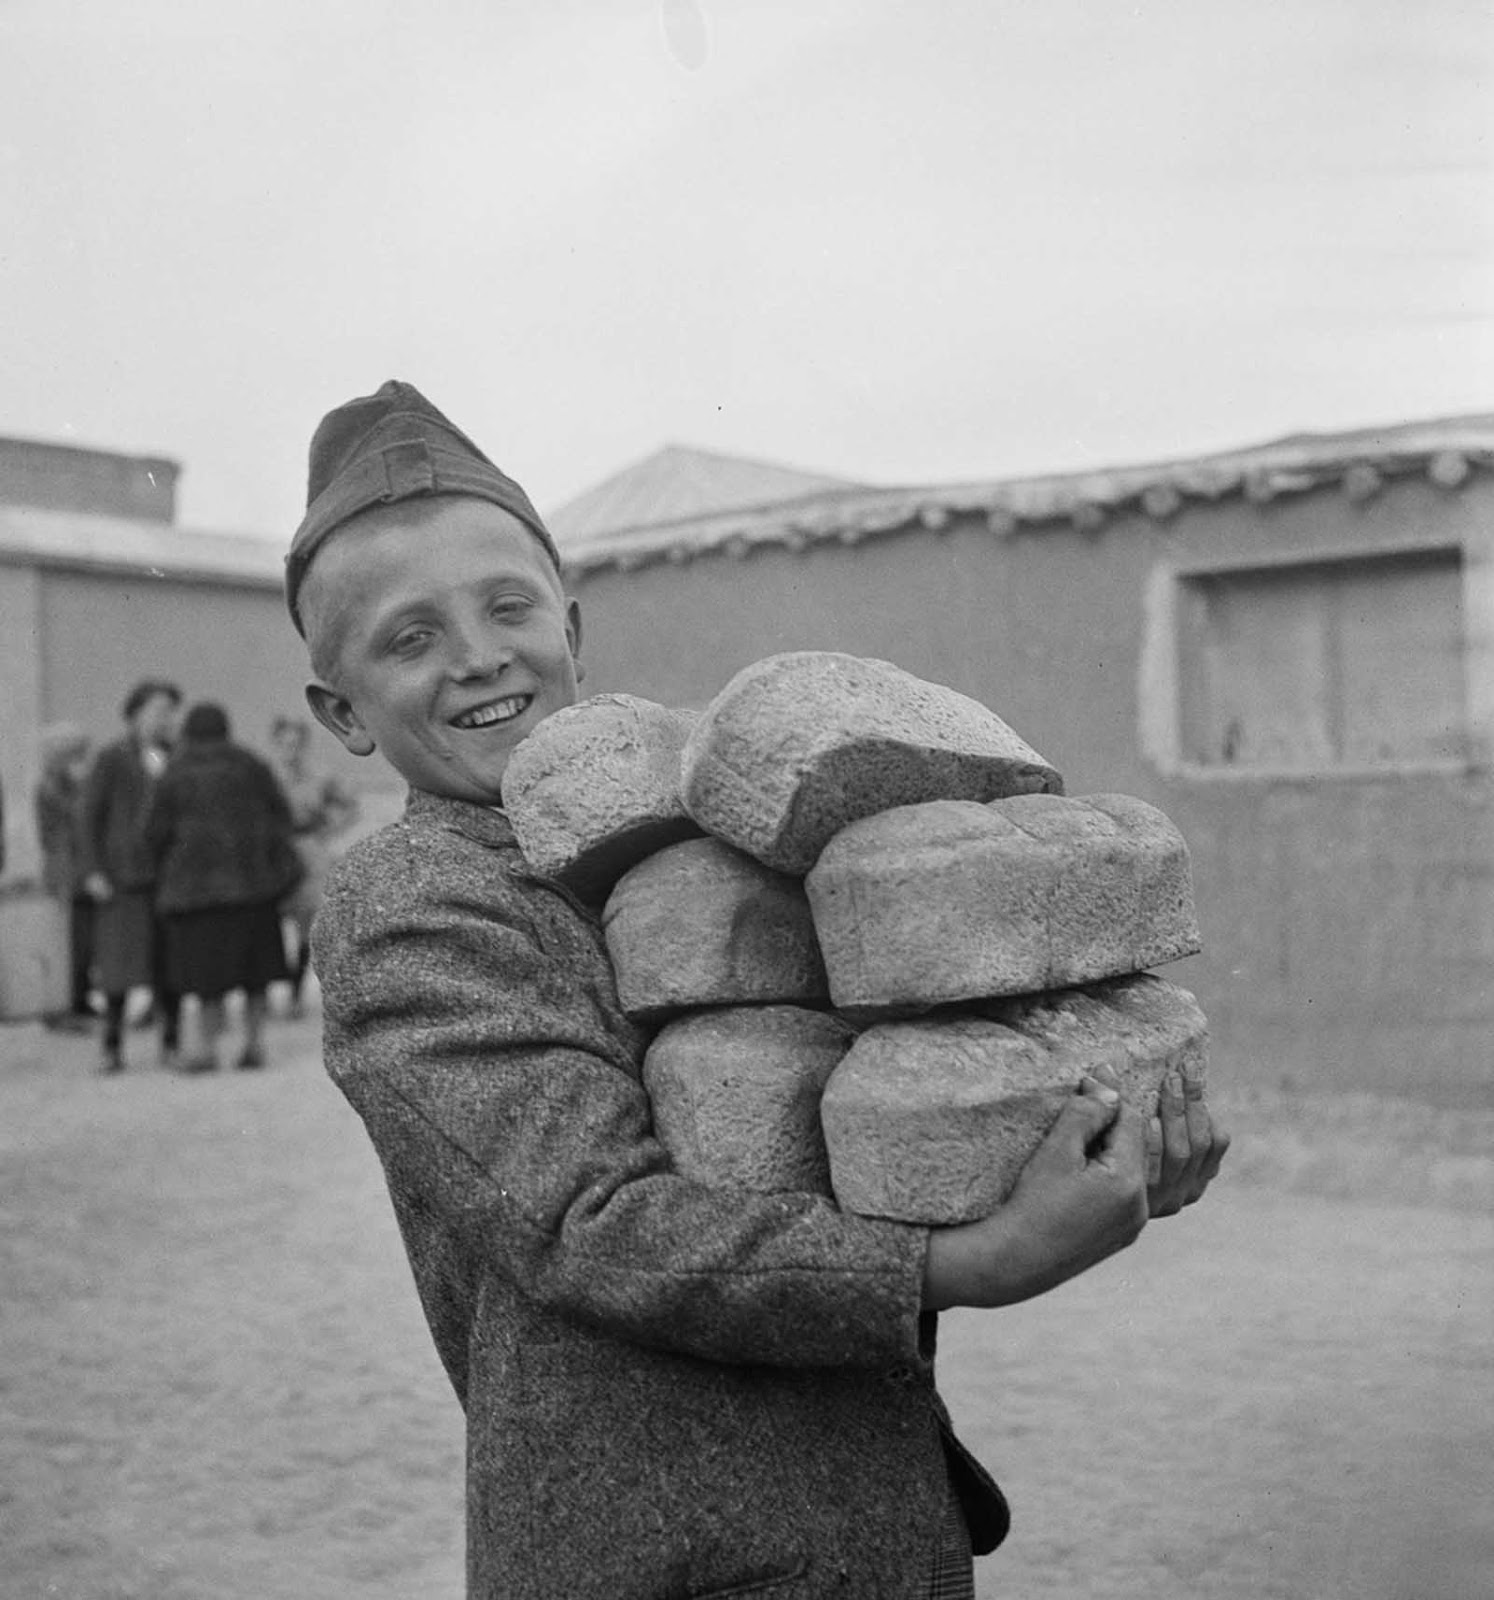 A Polish boy carries loaves of bread provided by the Red Cross.